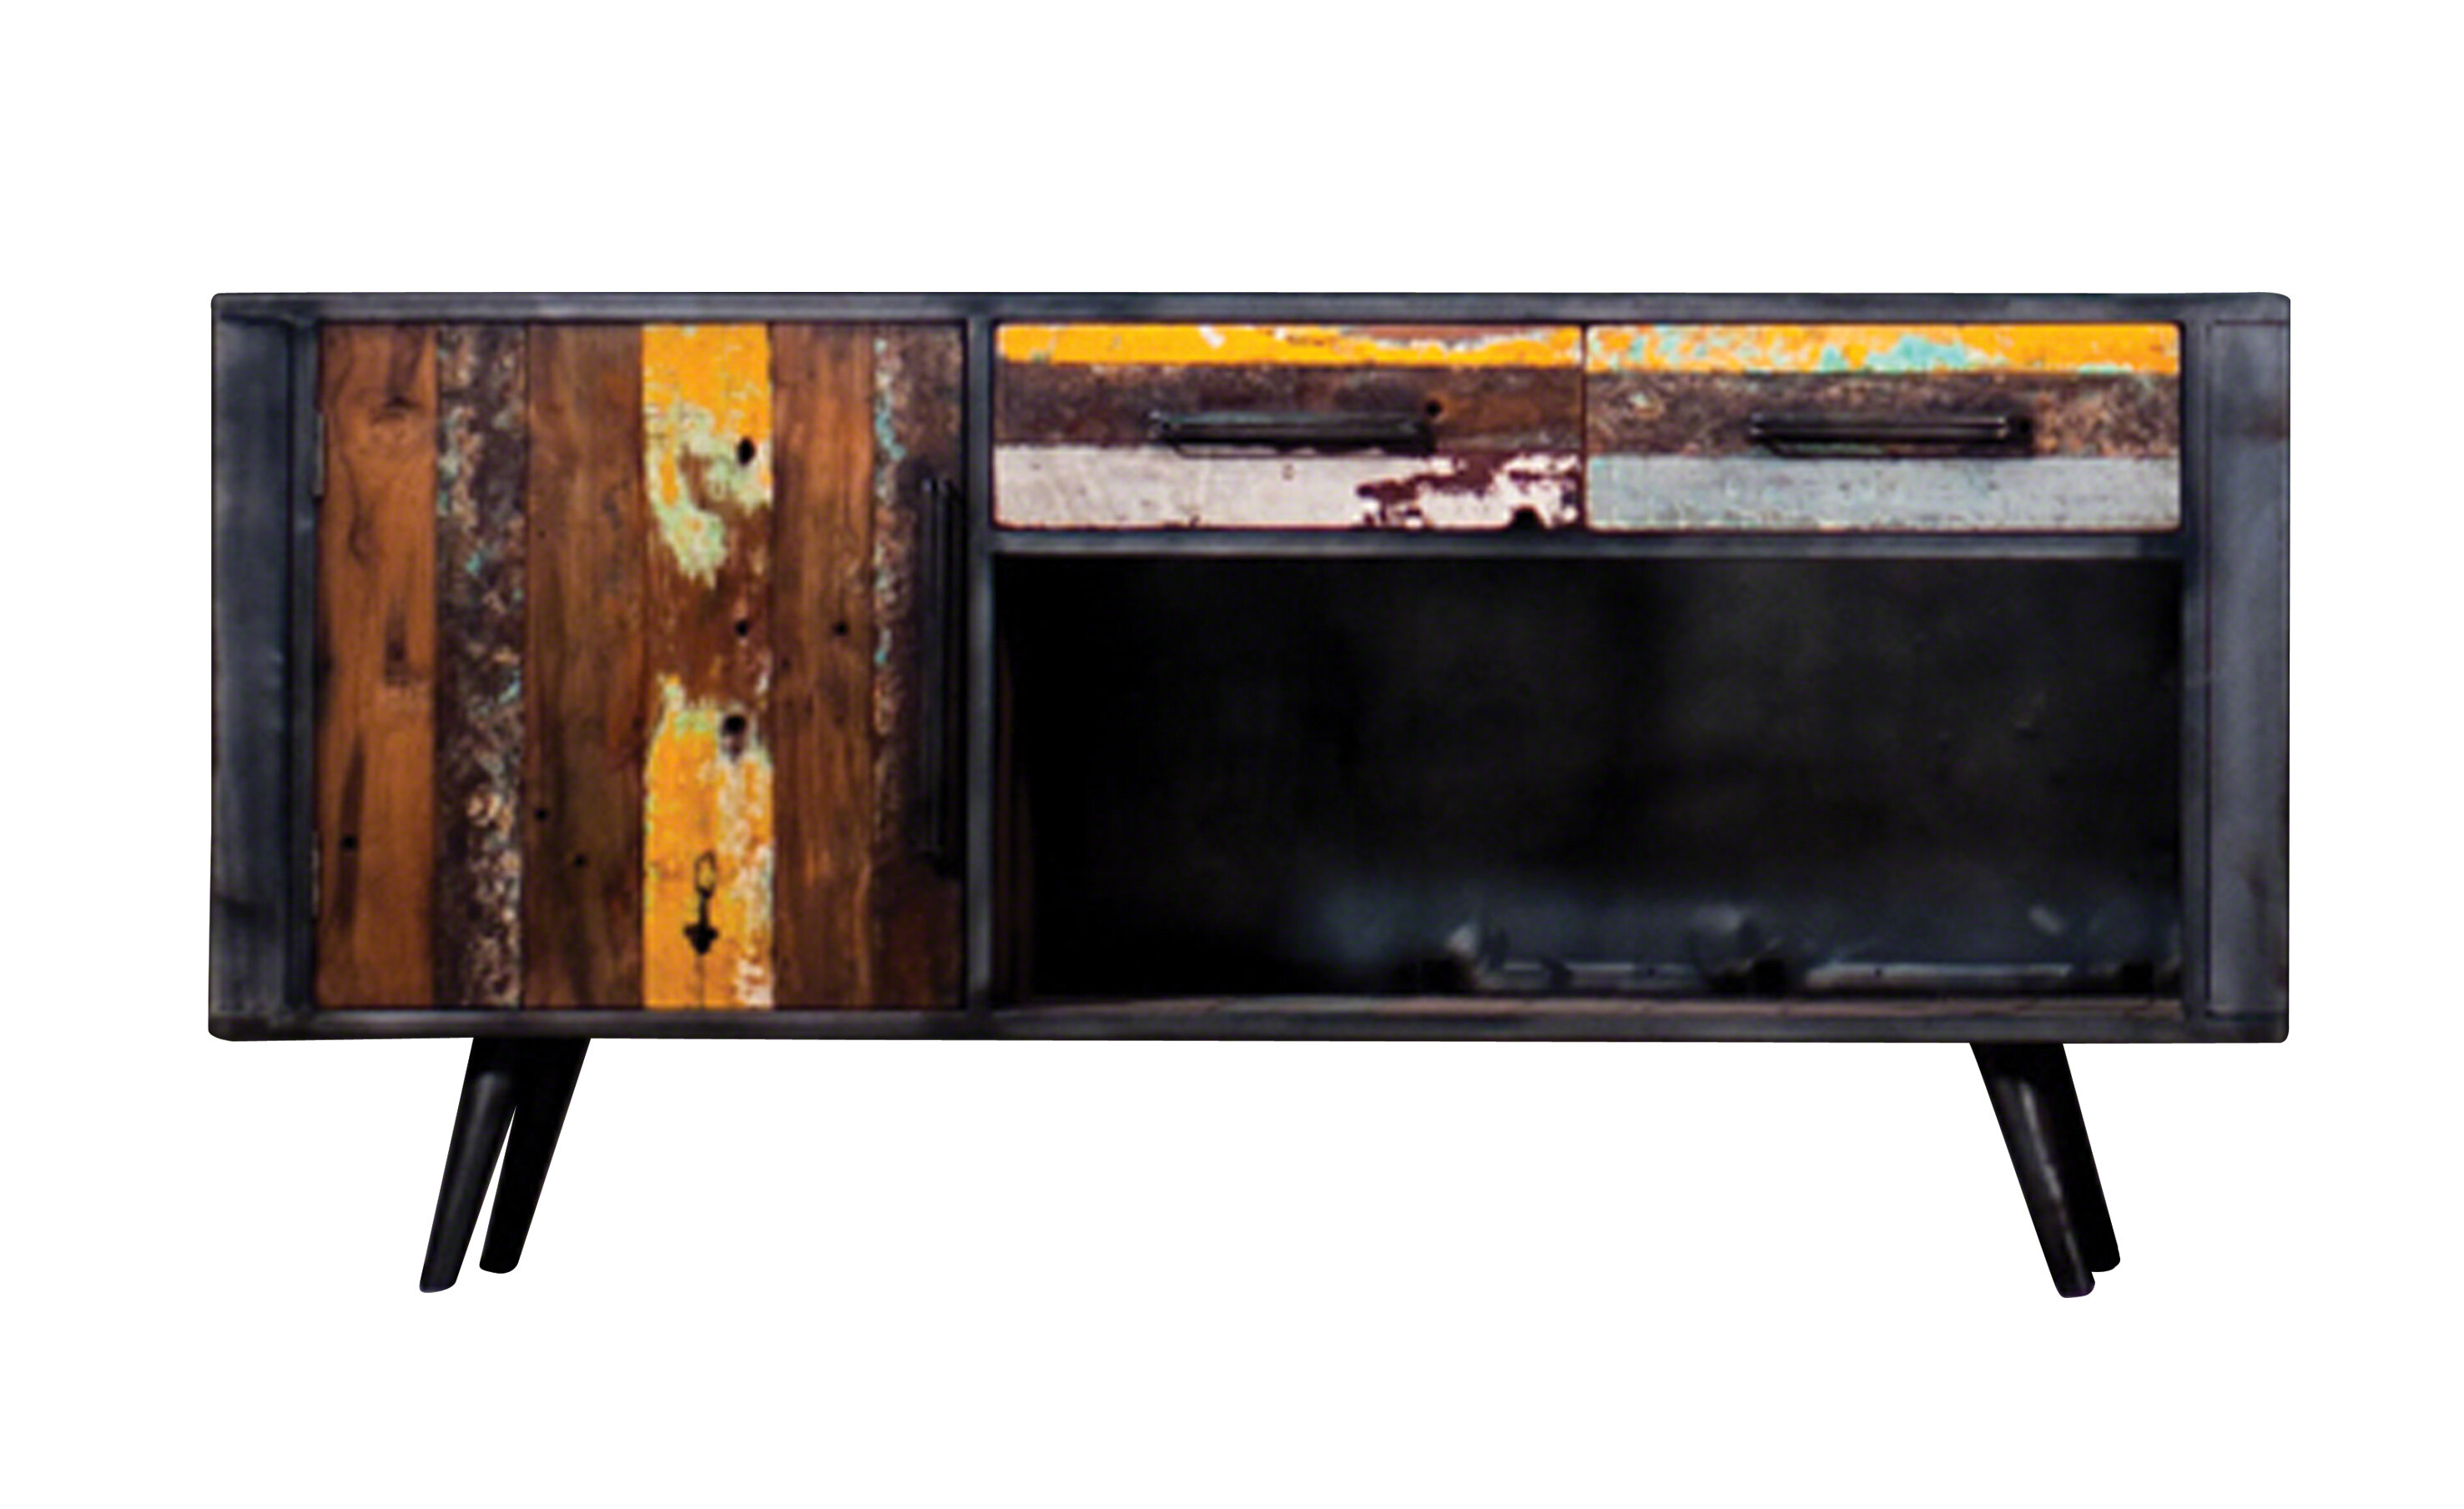 Groovy Ainez Recyc Boat Solid Wood Tv Stand For Tvs Up To 65 Download Free Architecture Designs Grimeyleaguecom